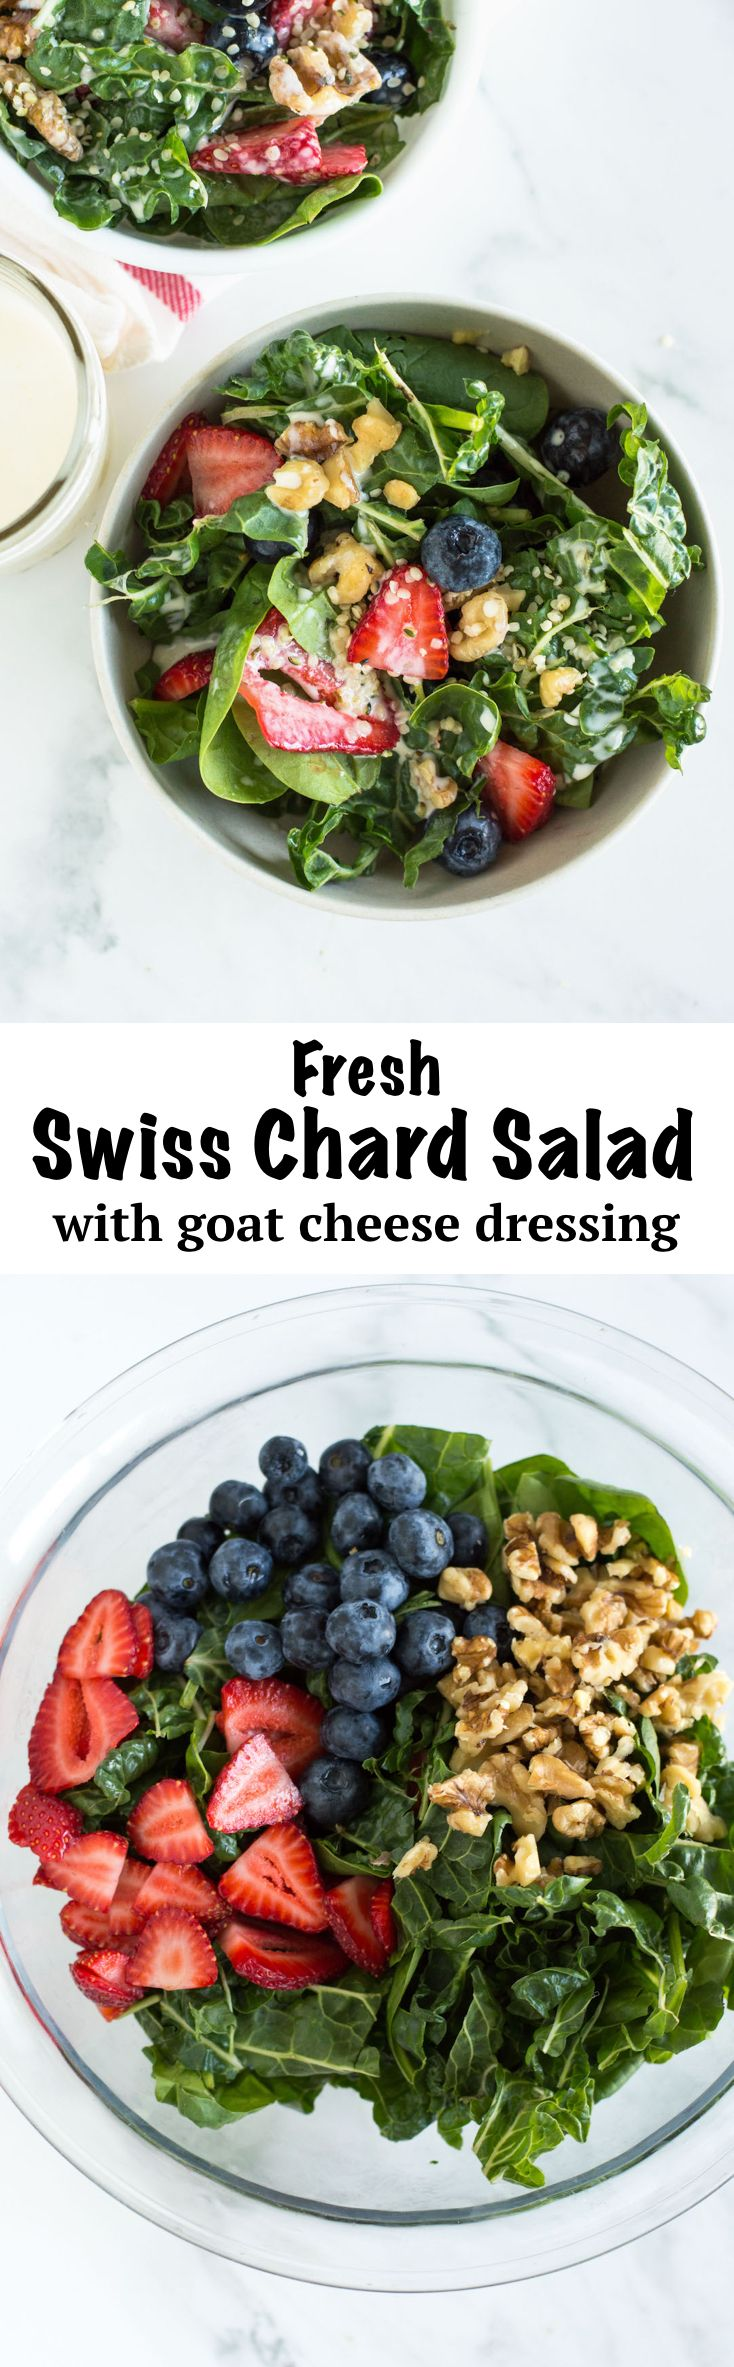 Fresh Swiss Chard Salad | nourishedtheblog.com | A Swiss Chard Salad recipe. A gluten free and vegetarian-friendly summer salad with fresh swiss chard, strawberries, blueberries and nuts tossed in an easy homemade goat cheese dressing.